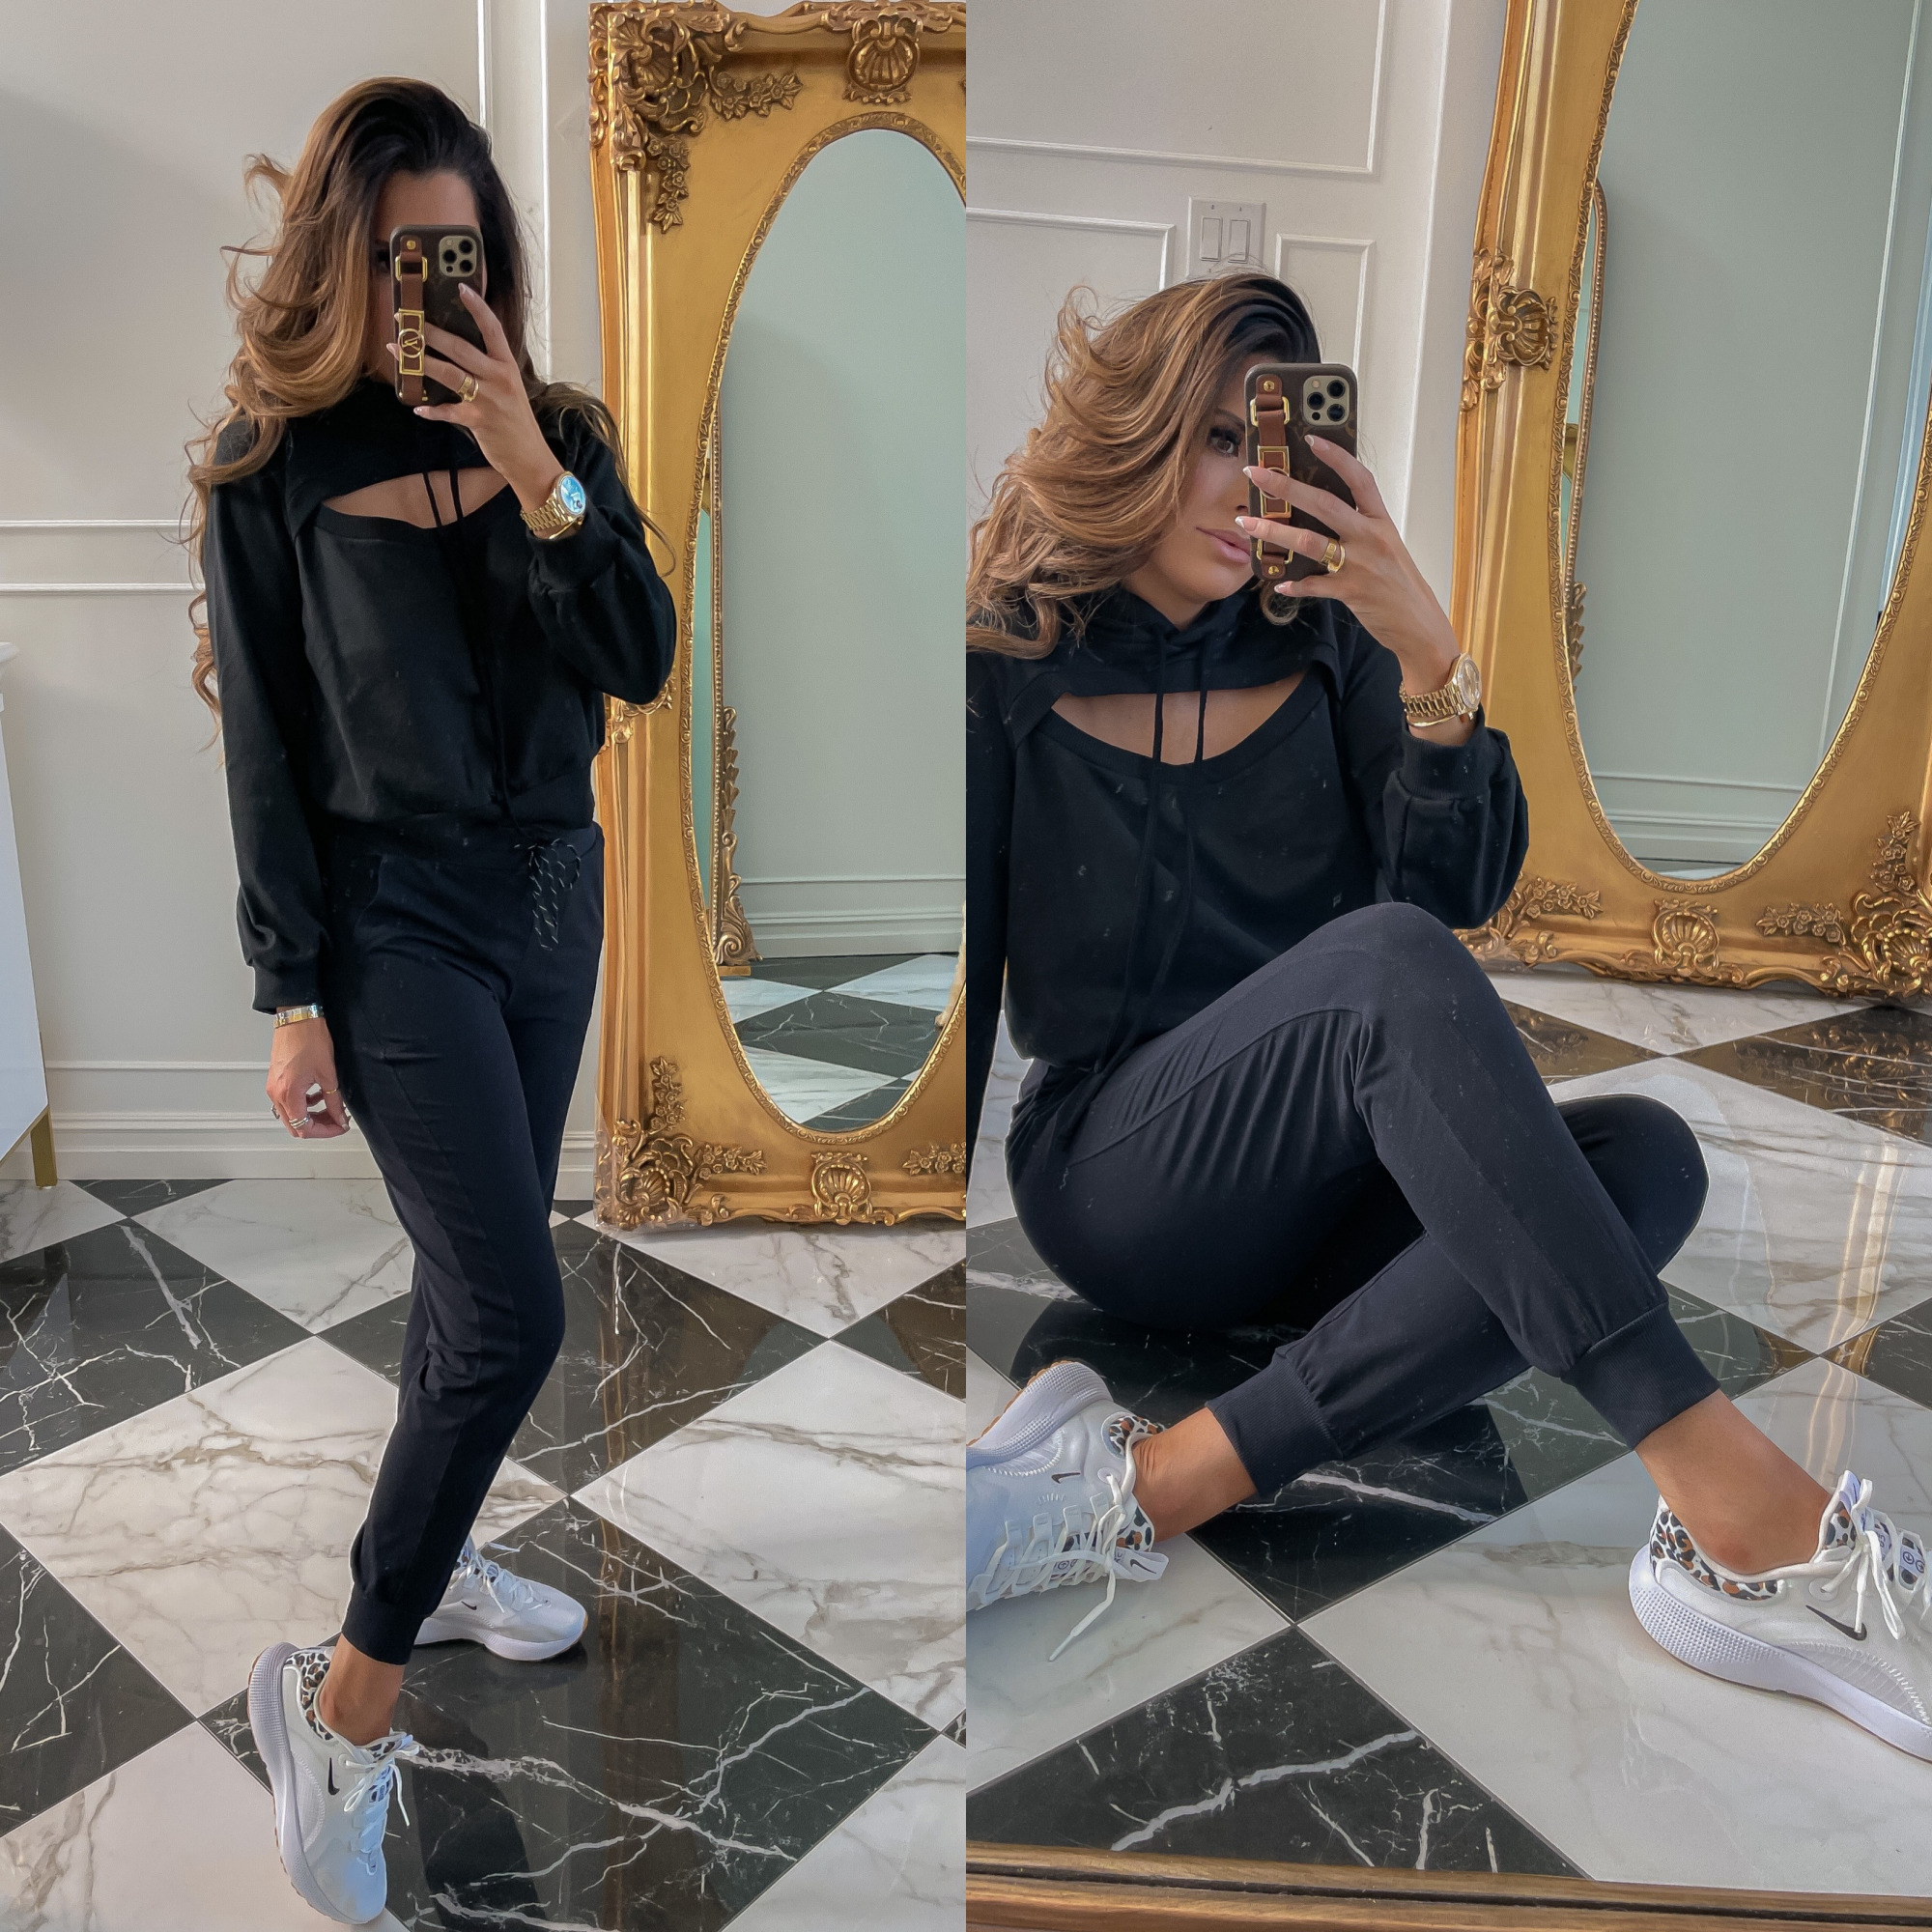 dstrom Anniversary Sale 2021 Picks, best of NSALE 2021, Nordstrom sale must haves blog post, Emily gemma3 | Nordstrom Anniversary Sale US fashion blog, The Sweetest Thing: image of Emily Gemma wearing a Nordstrom peekaboo hoodie, black drawstring joggers and nike sneakers.